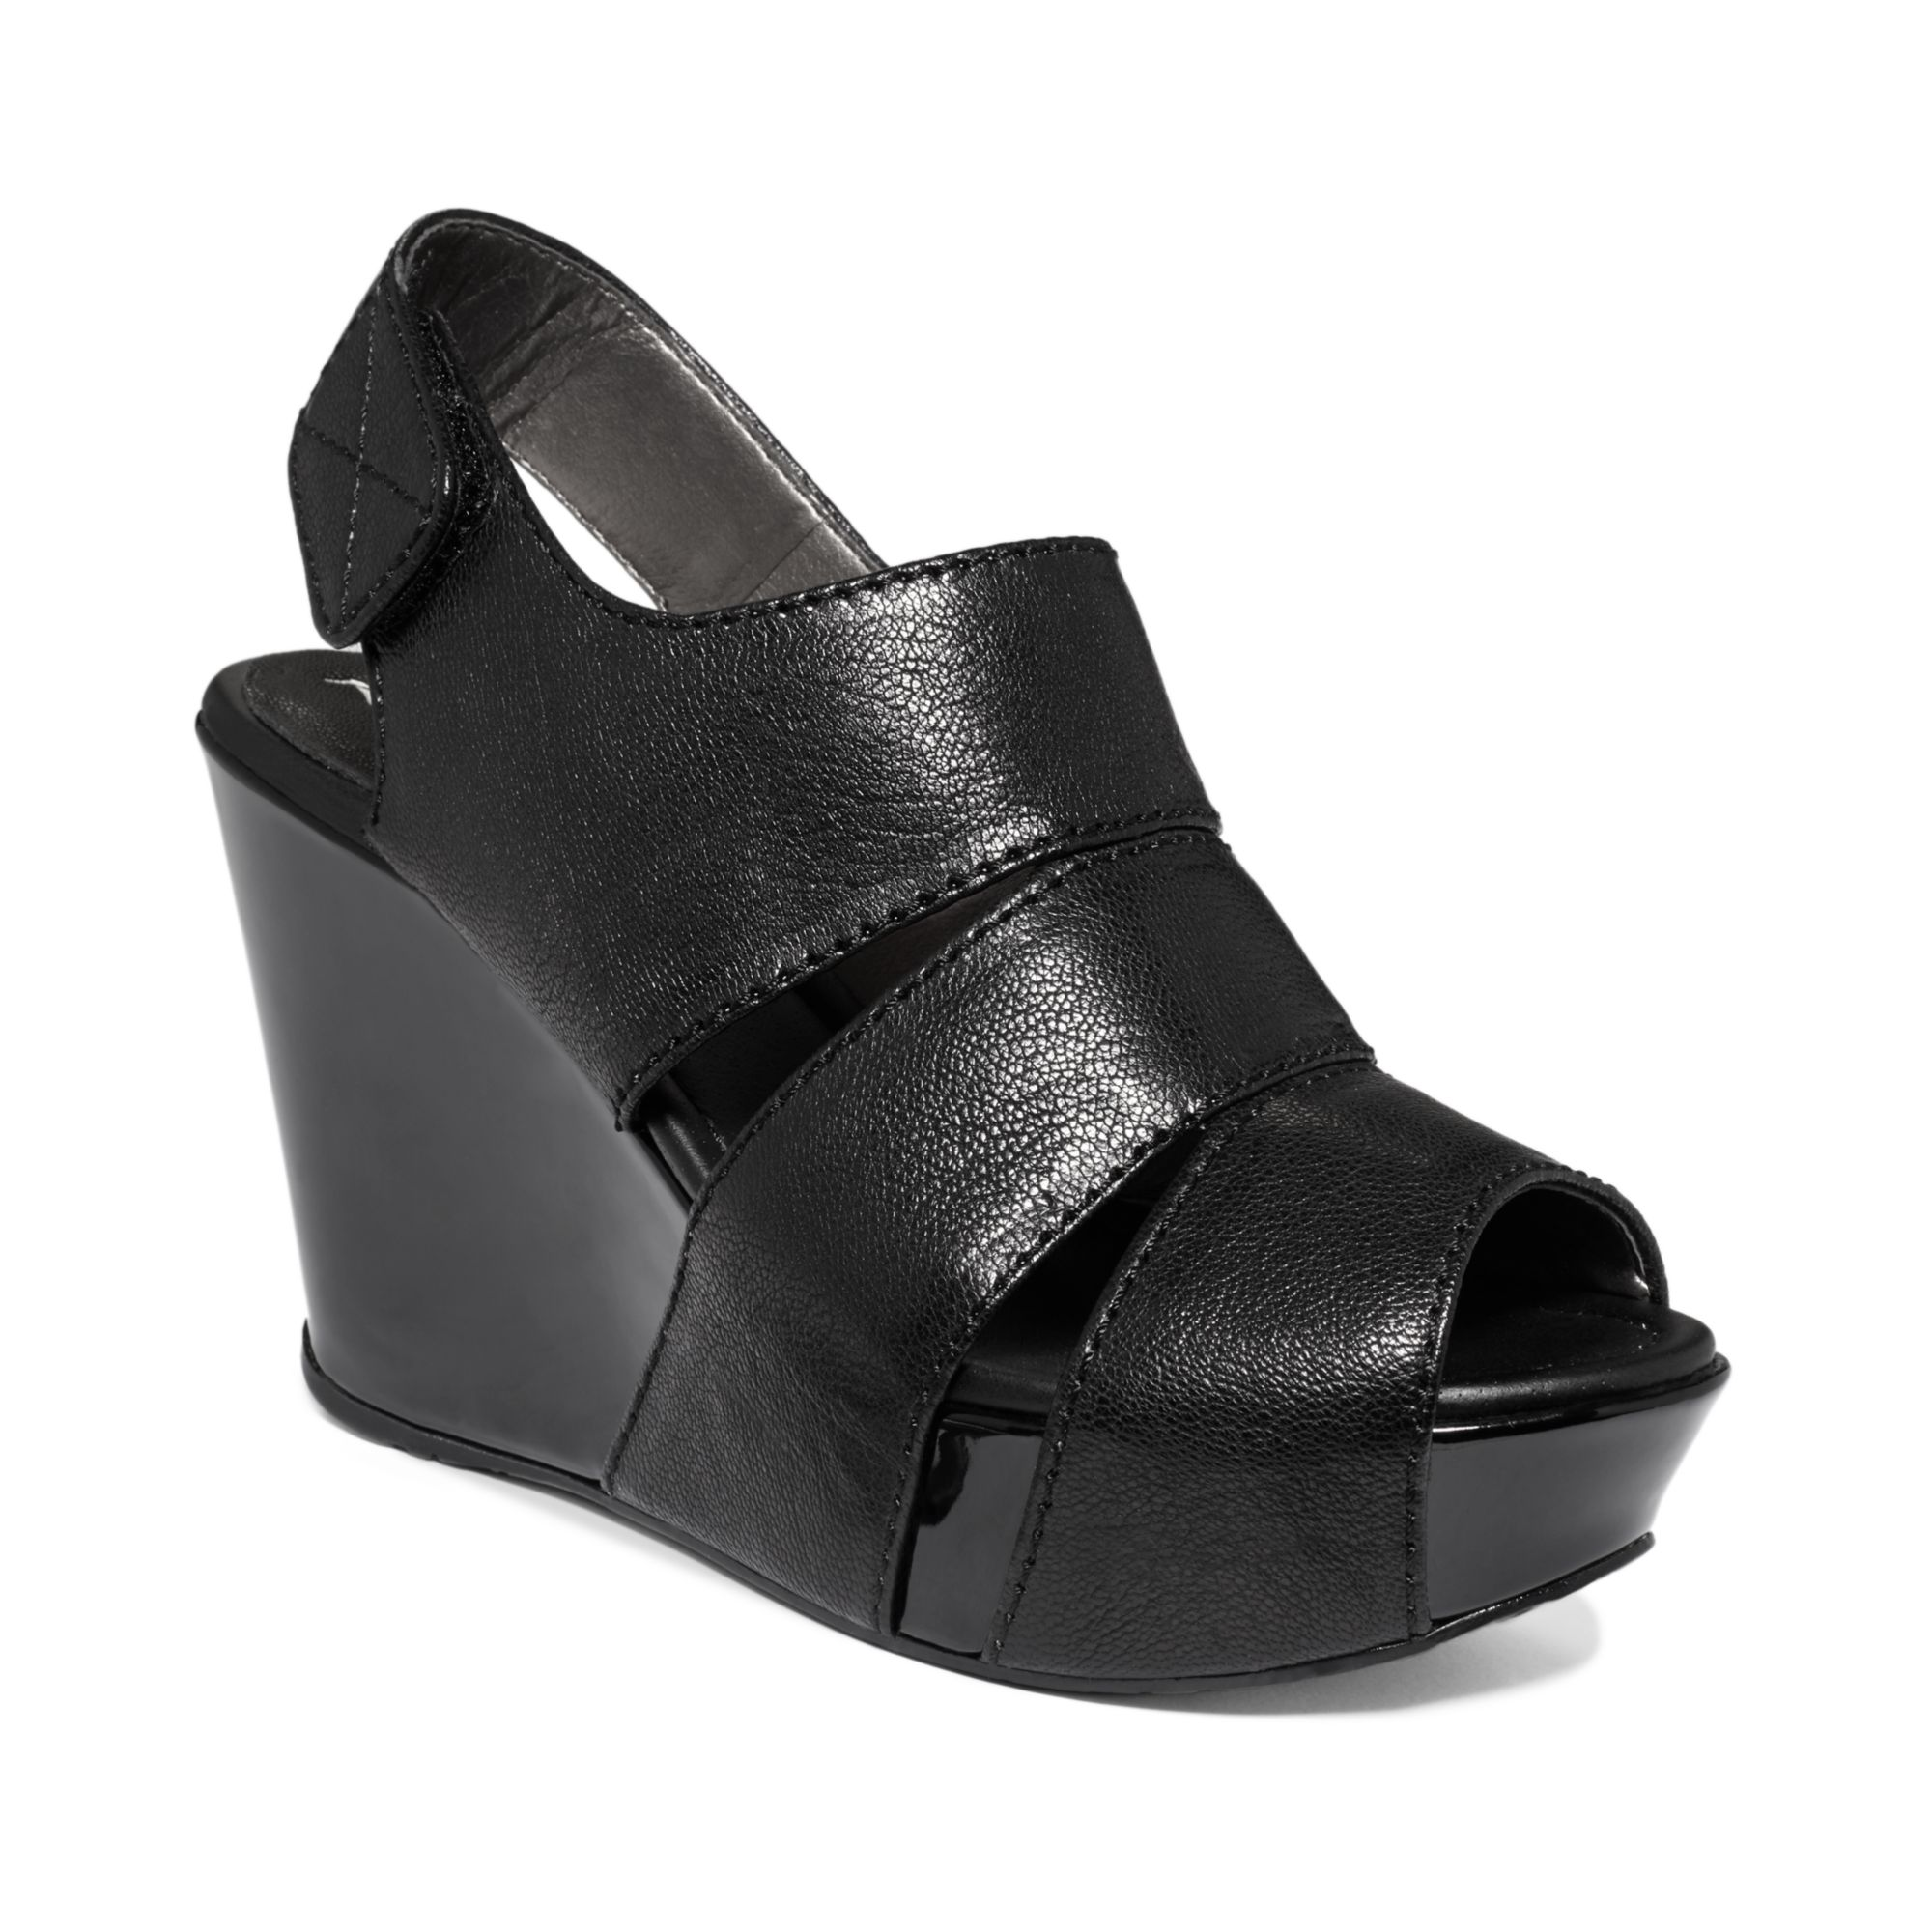 Kenneth Cole Reaction Good Sole Platform Wedge Sandals In